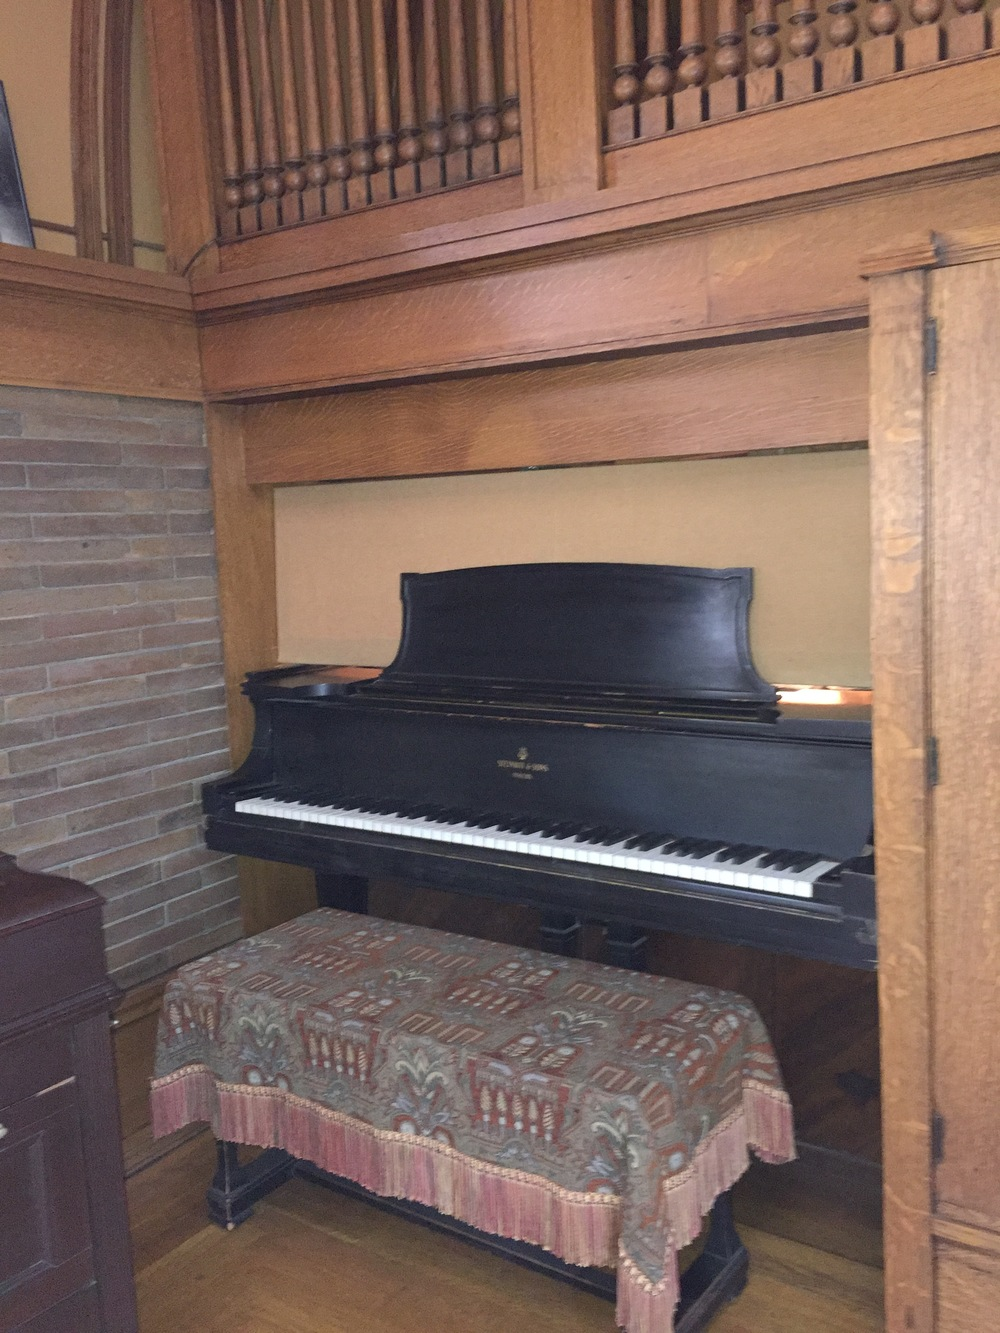 FLW playroom piano built into wall